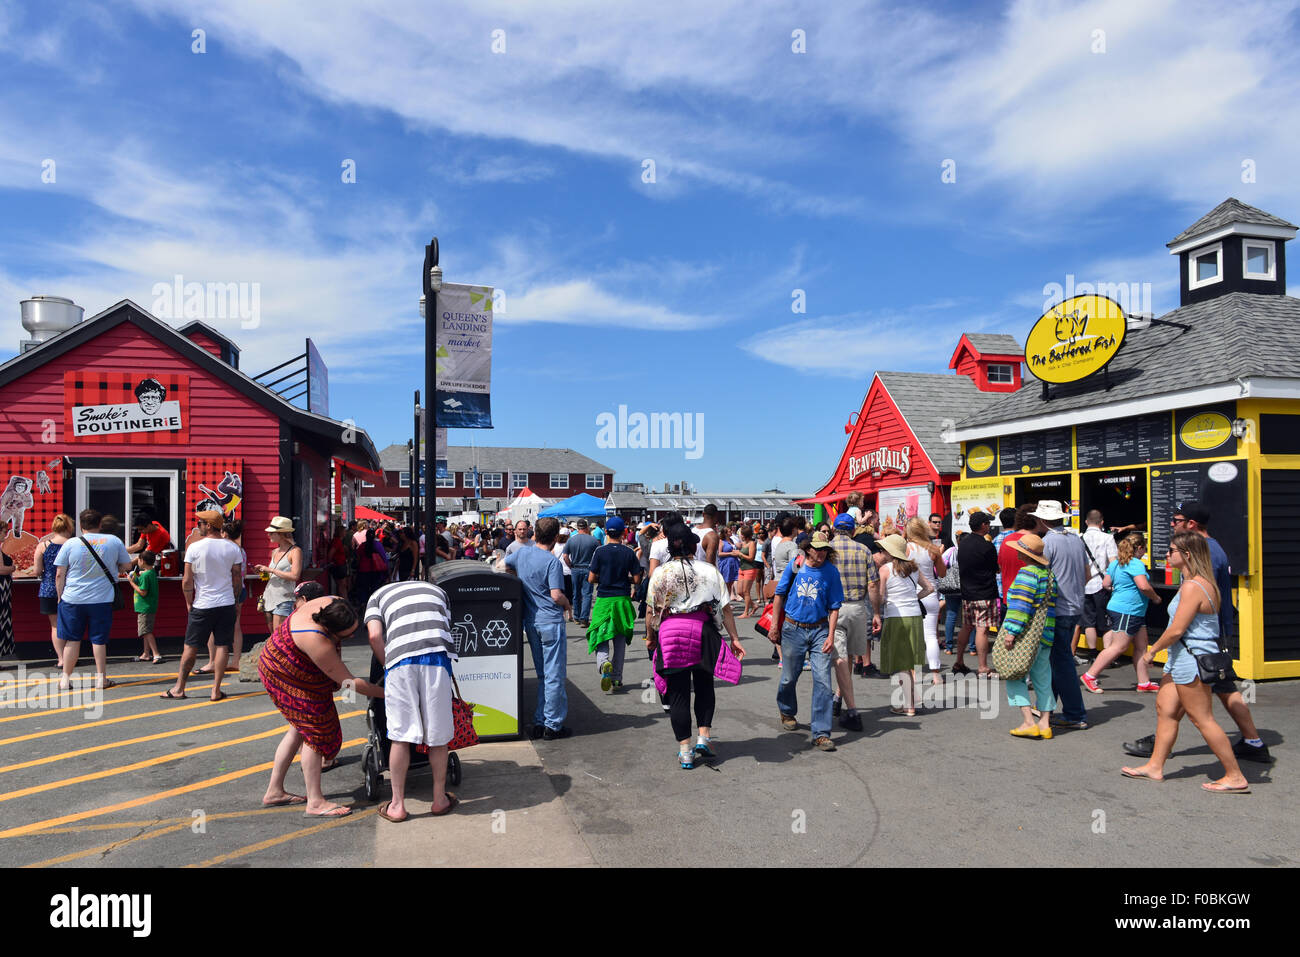 The historic waterfront in Halifax contains several food stores, including Canadian food such as poutine and Beaver - Stock Image